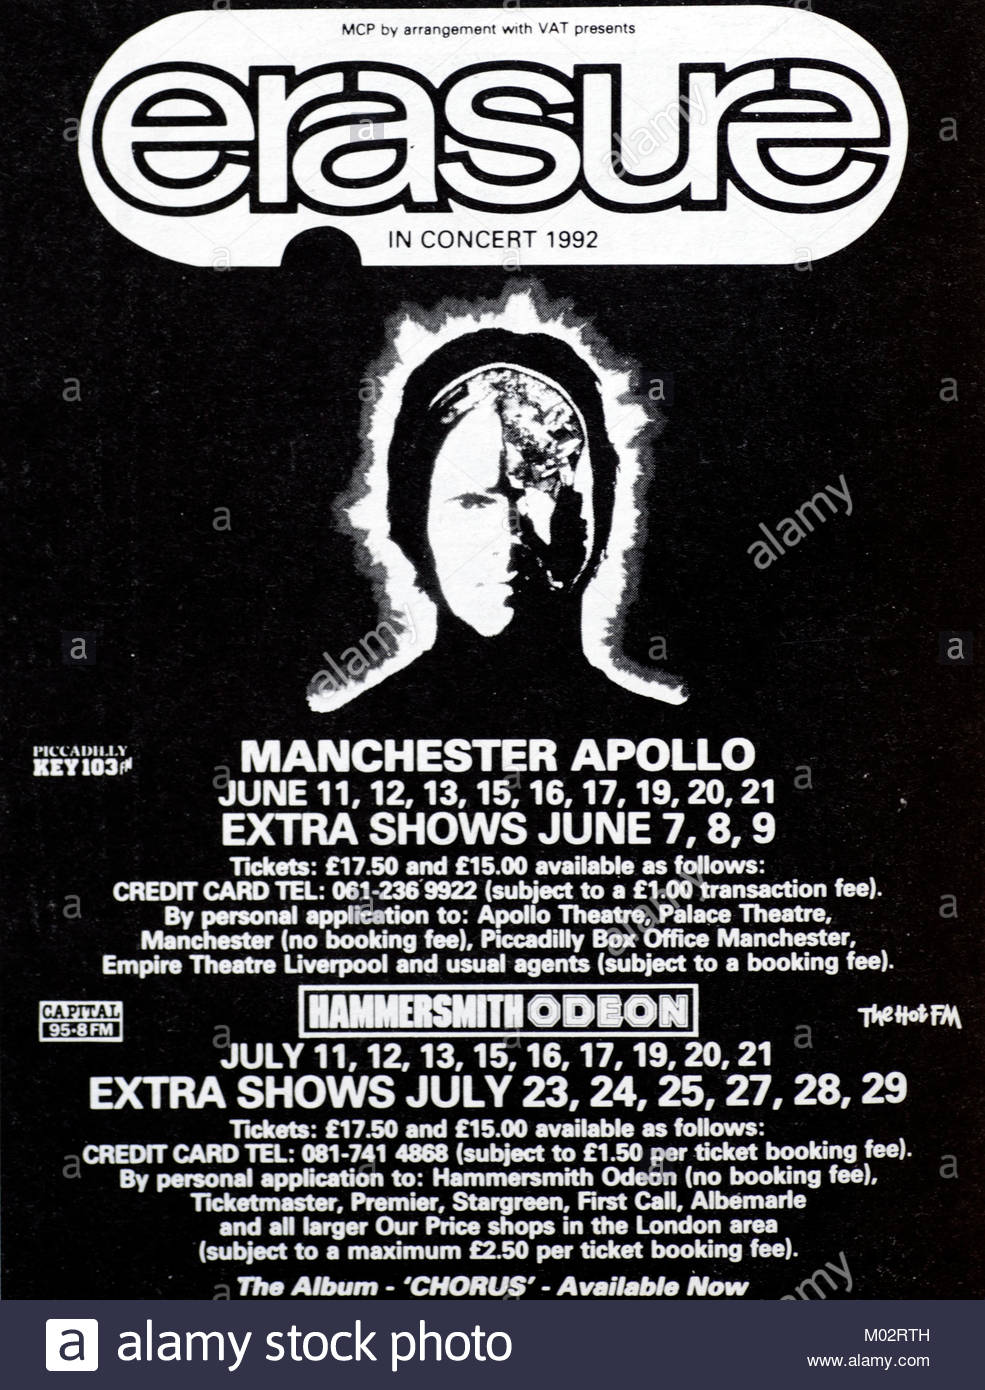 Magazine advert with UK tour dates for Erasure 1992 - Stock Image